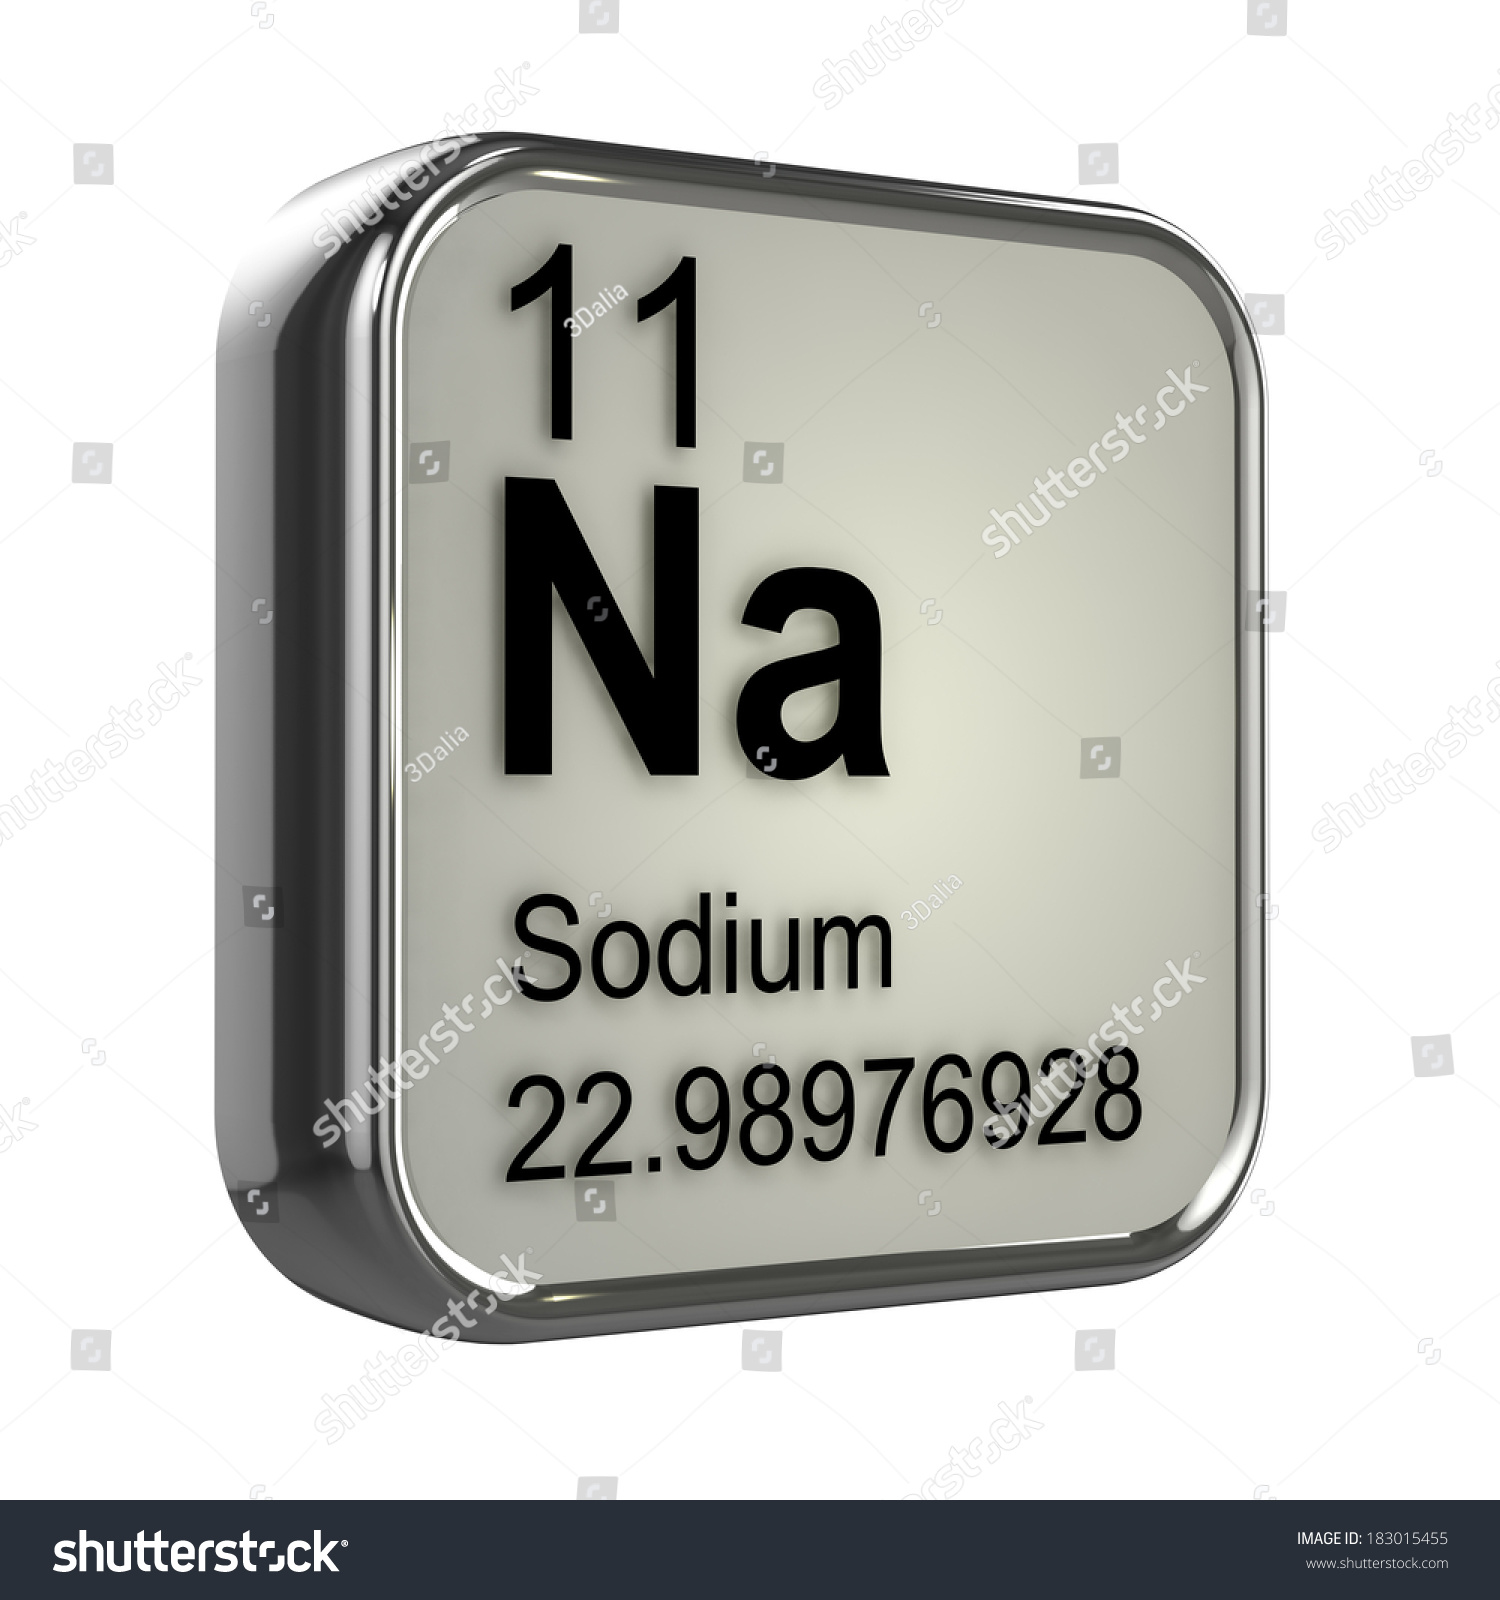 3d render sodium element periodic table stock illustration 3d render of the sodium element from the periodic table gamestrikefo Image collections